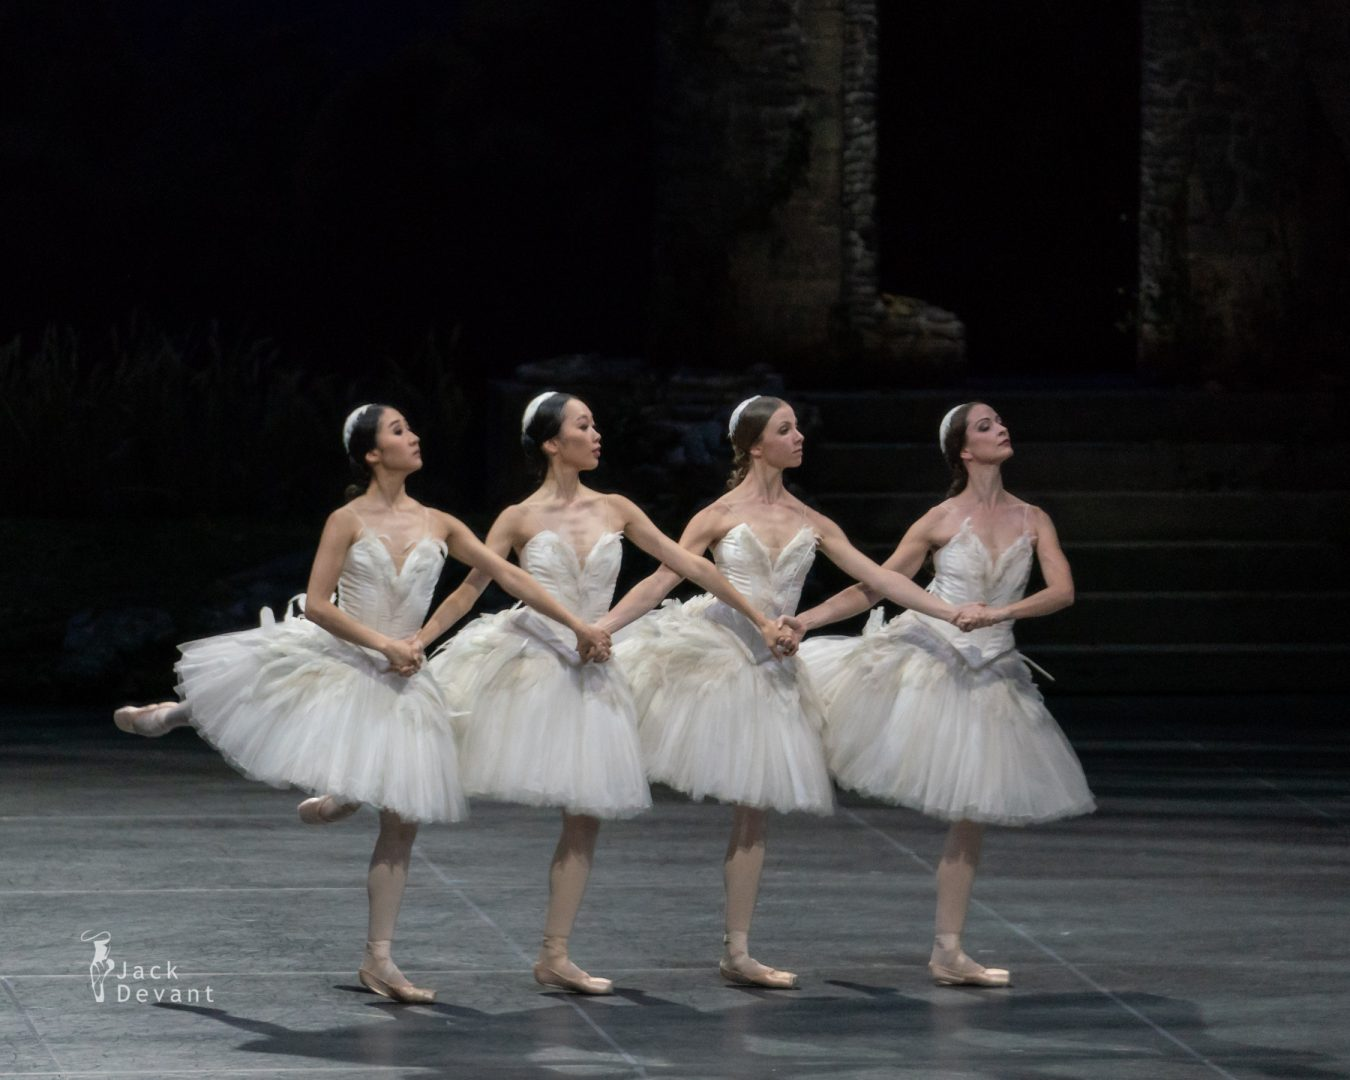 Four Cygnets in Swan Lake act 2 1